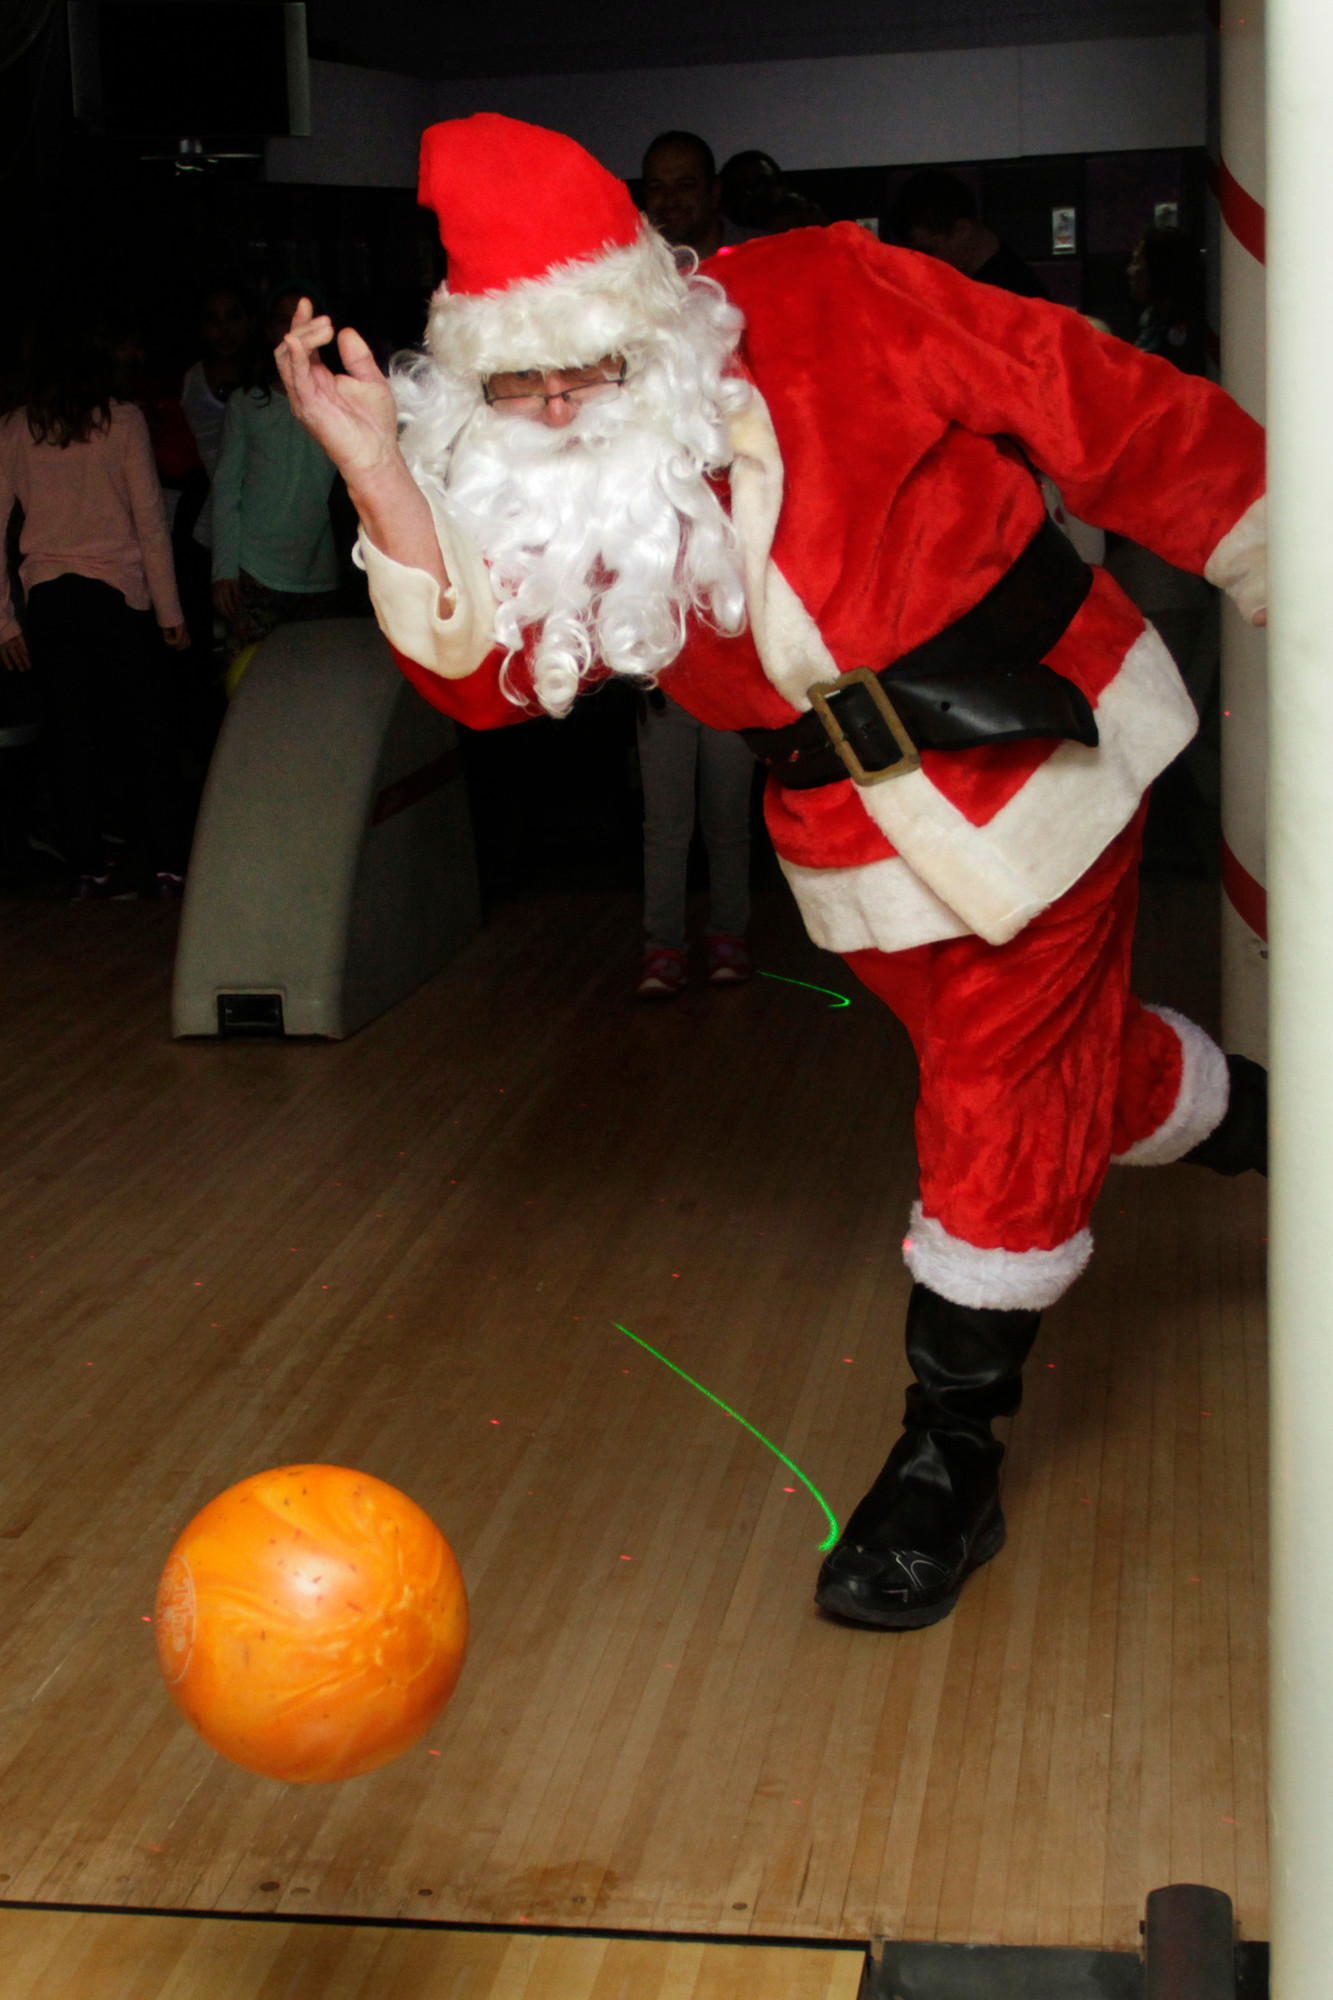 Santa showed some bowling expertise at Sandee Lanes.